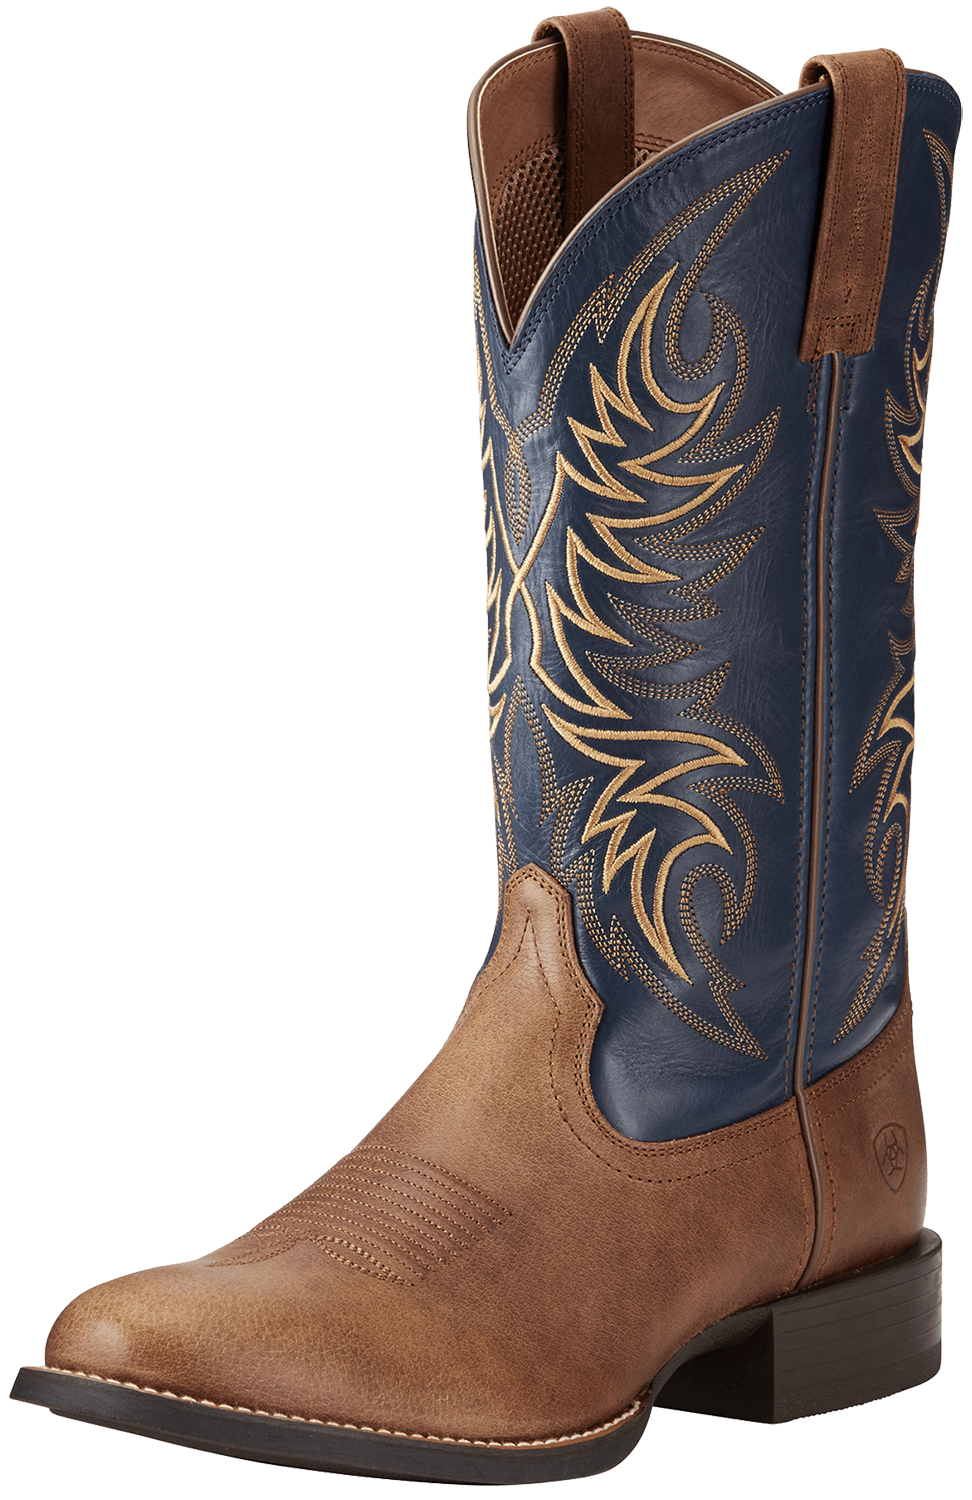 Cowboy boot png. Ariat men s sport